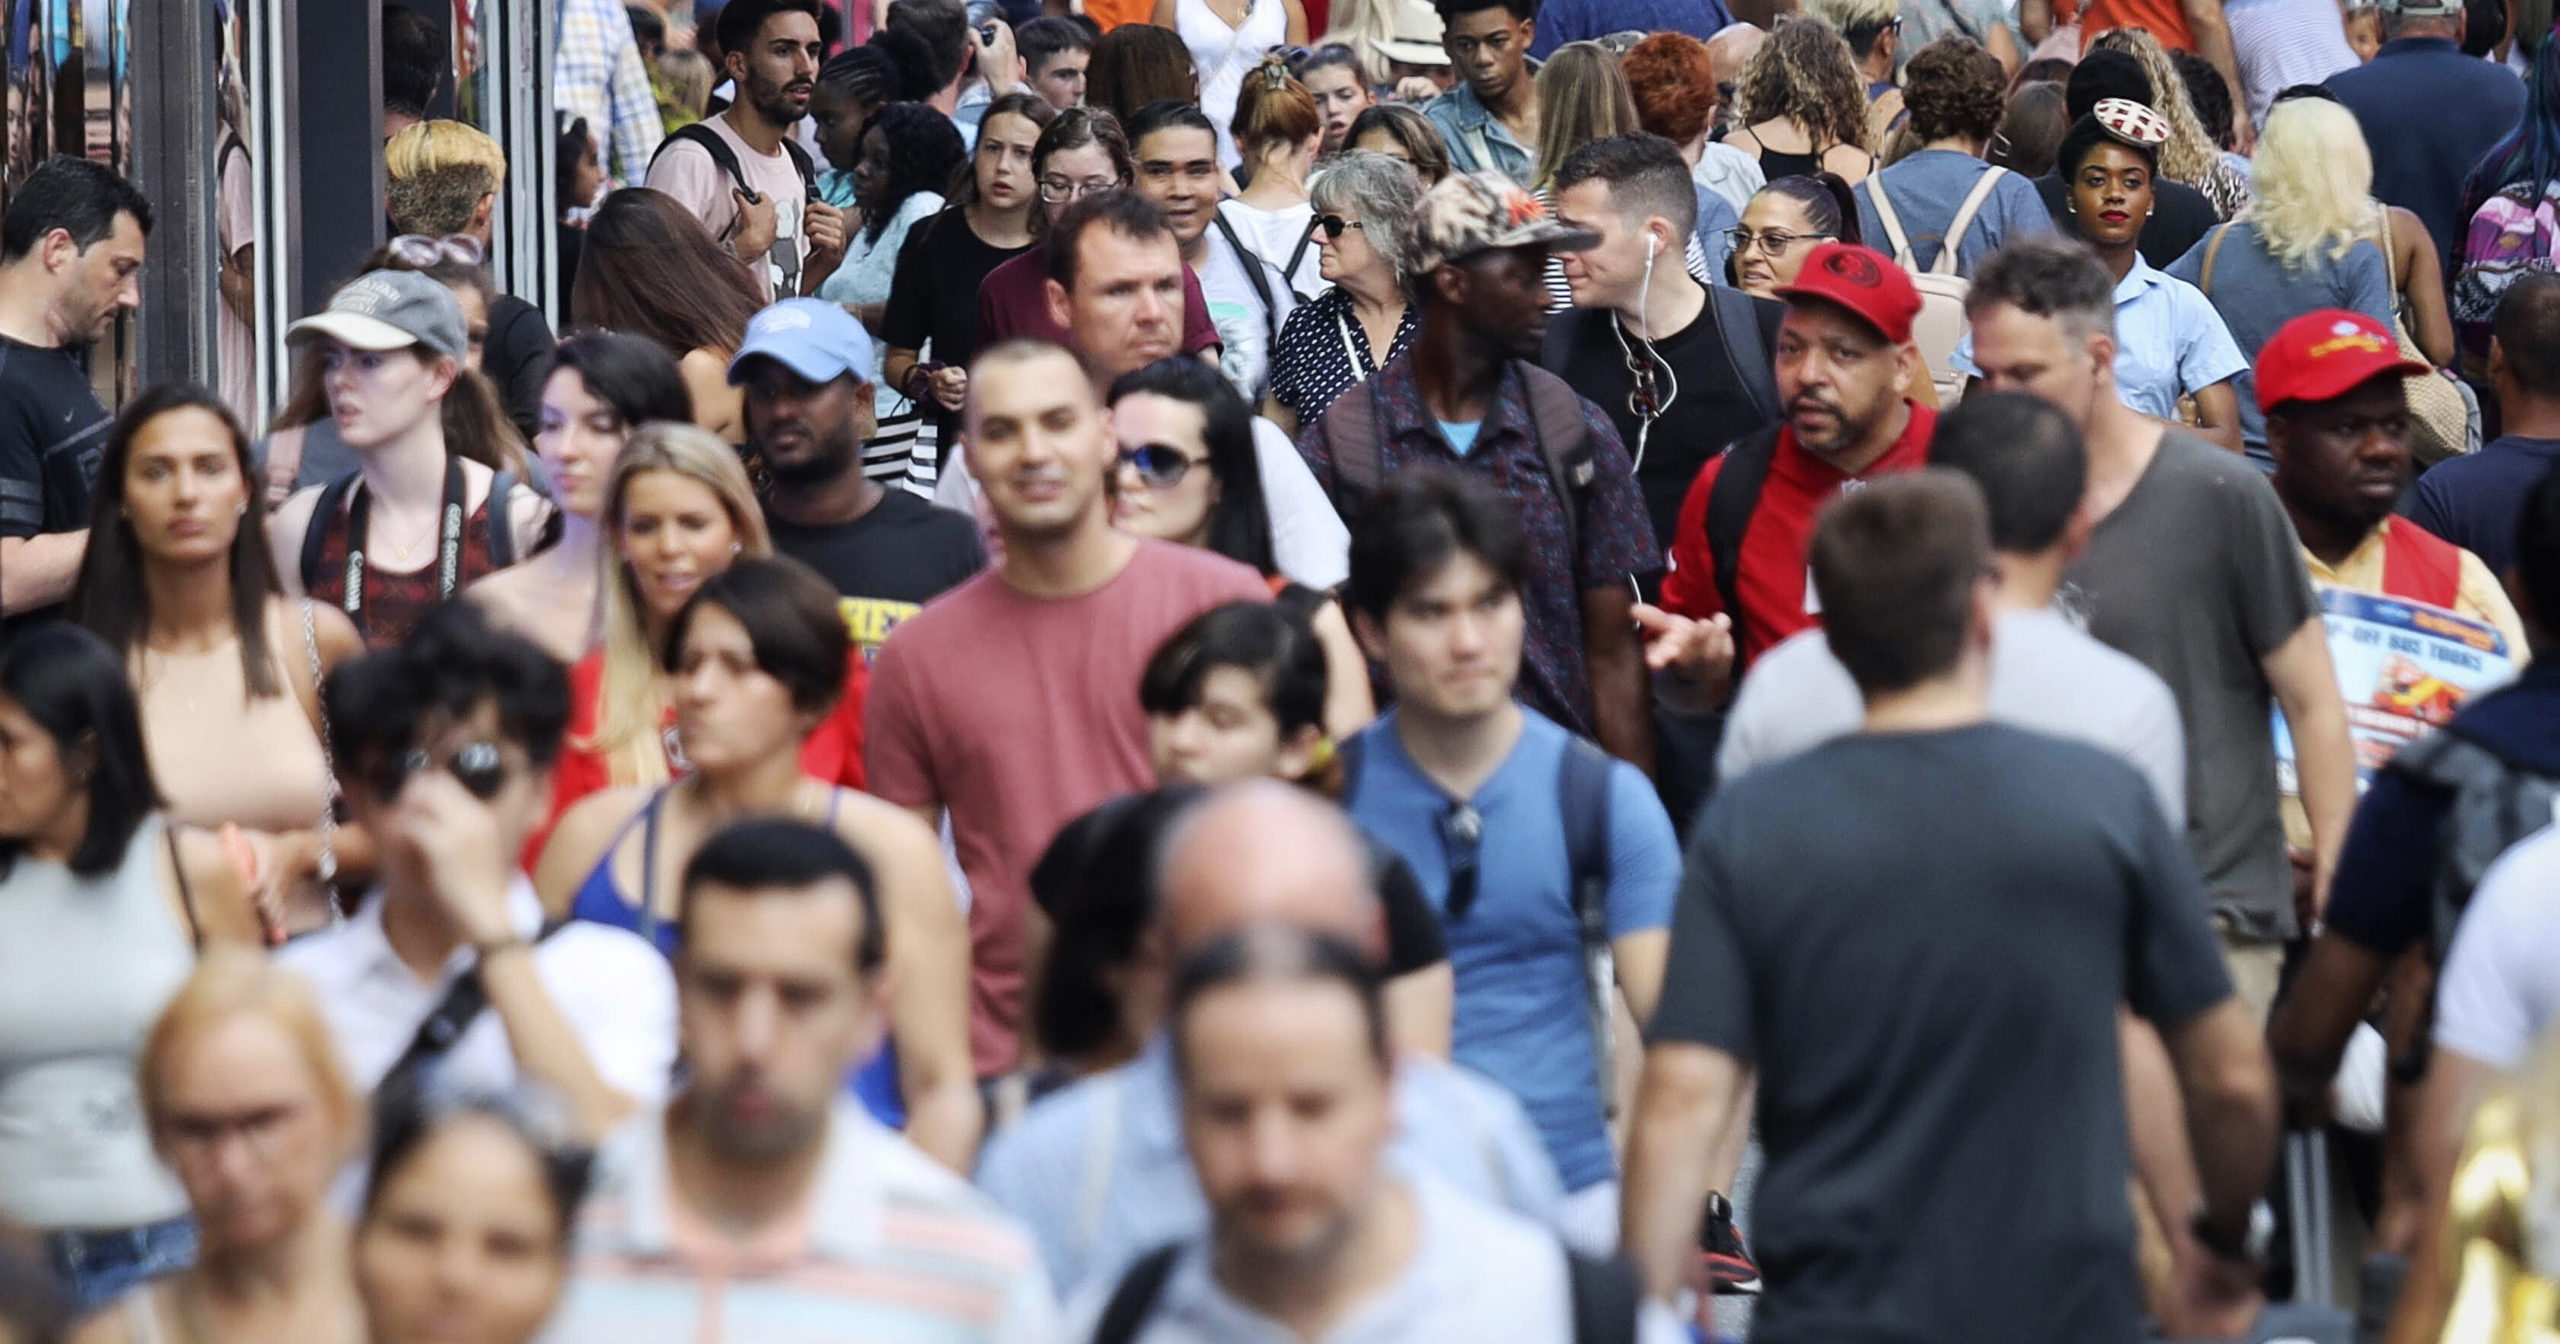 In this Aug. 22, 2019, file photo, people walk through New York's Times Square. The population of non-Hispanic whites in the U.S. has gotten smaller in the past decade as deaths have surpassed births in this aging demographic, and a majority of the population under age 16 is nonwhite for the first time though they are fewer in number than a decade ago, according to new figures released June 25, 2020, by the U.S. Census Bureau.